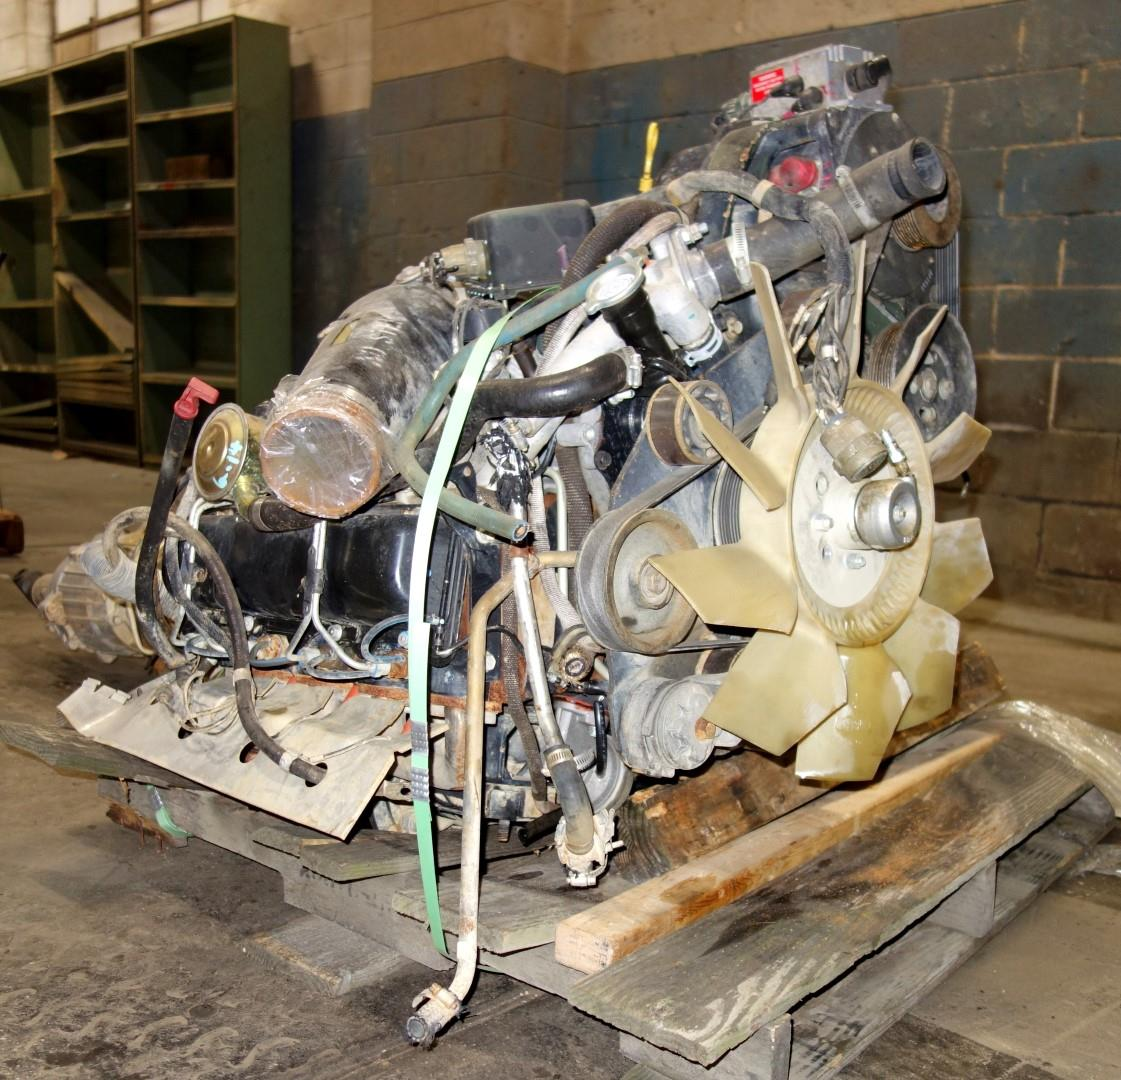 6 5 liter general motors diesel engine for hmmwv 1 1 4 ton